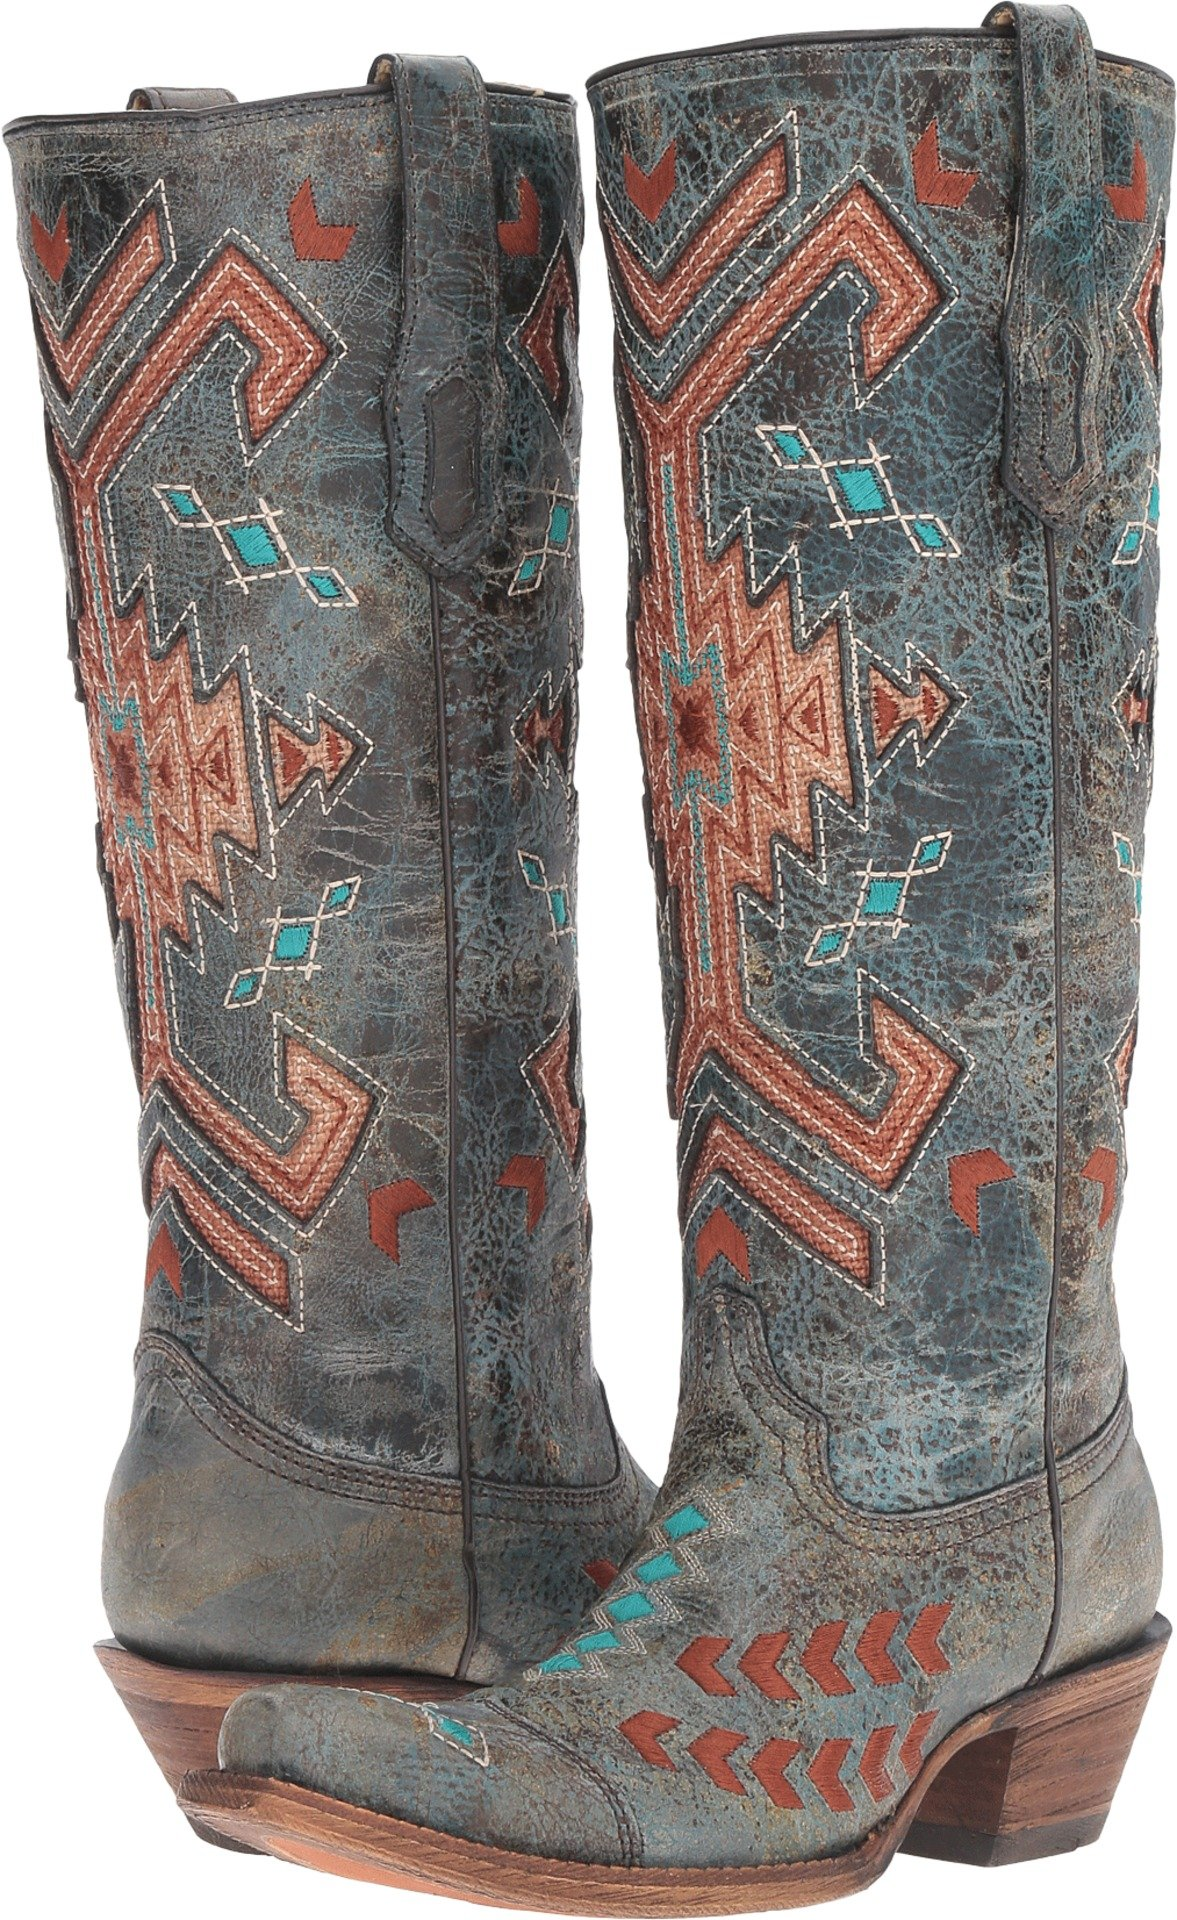 Corral Boots Women's A3164 Black/Multicolor Boot by Corral Boots (Image #1)